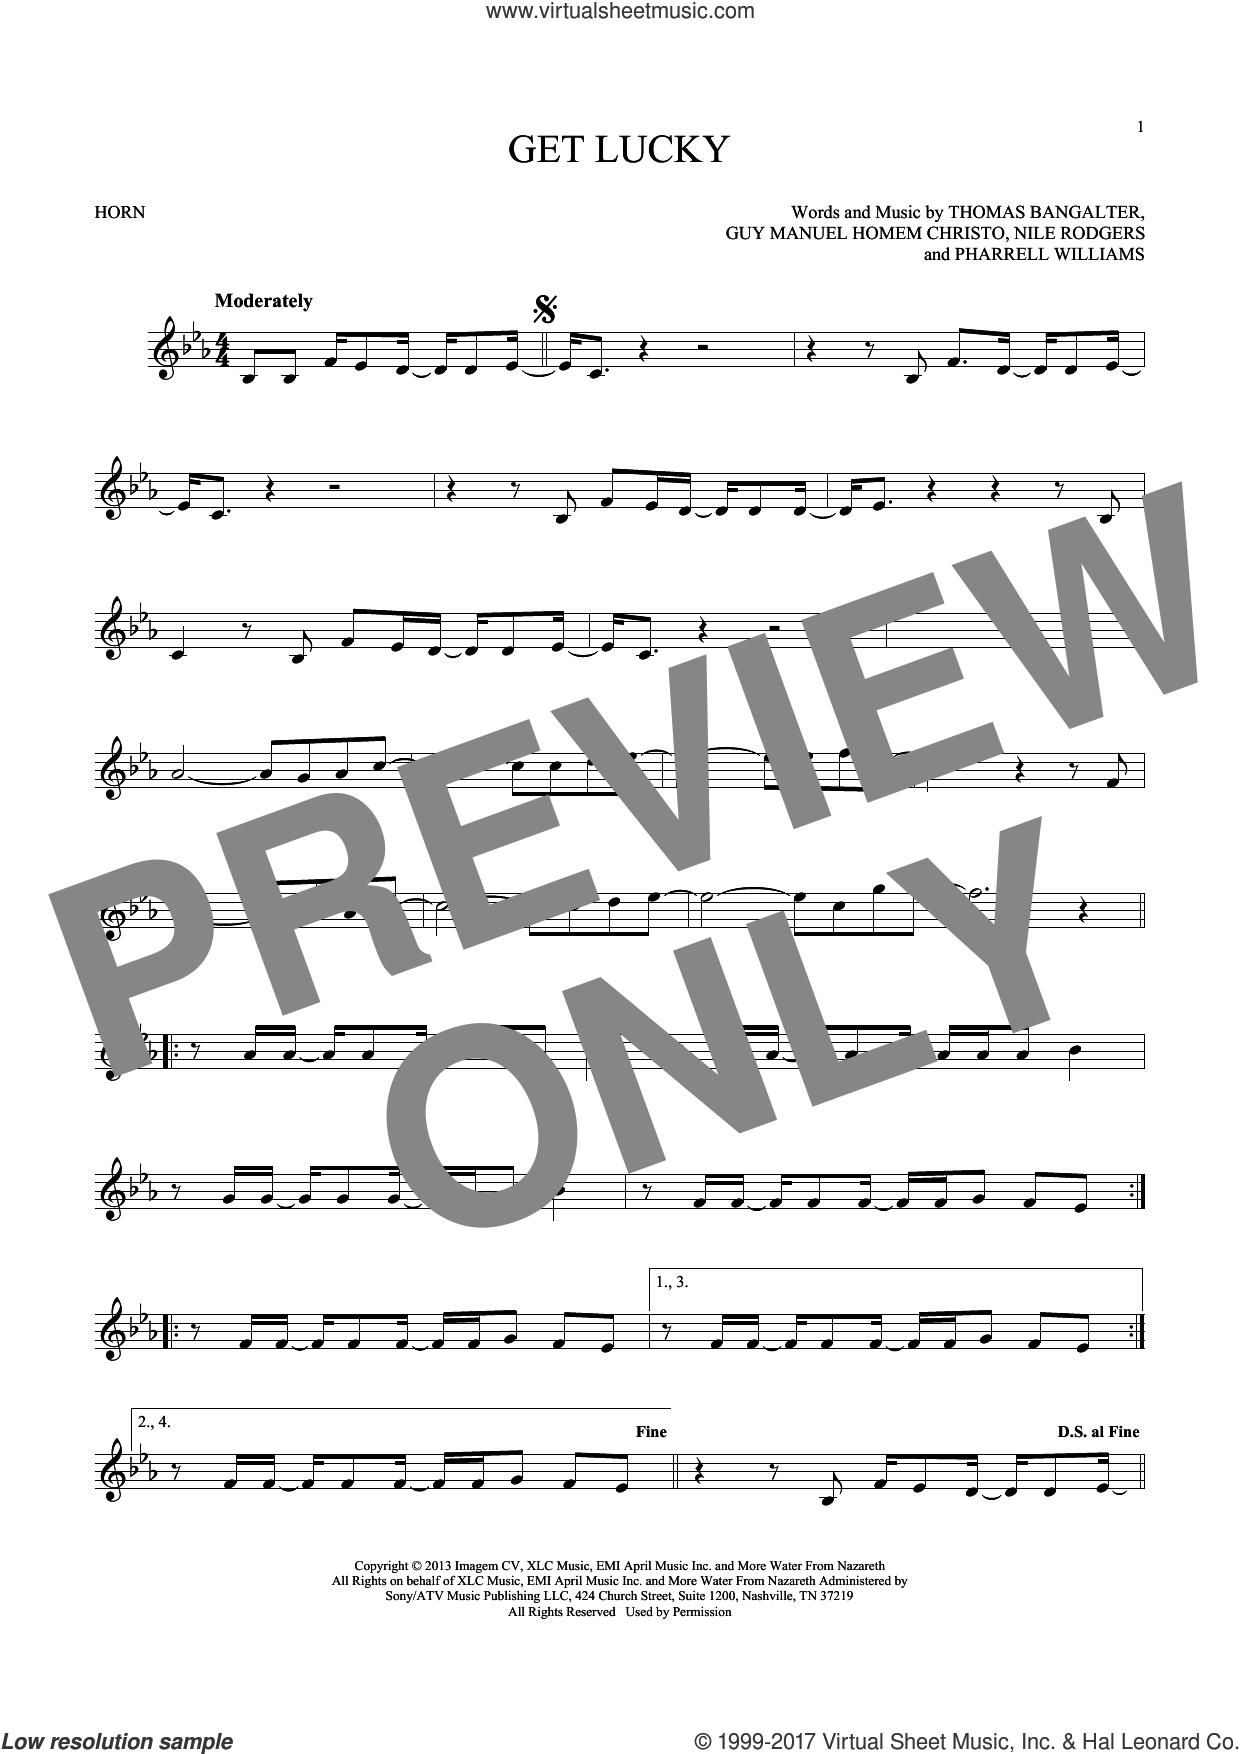 Get Lucky sheet music for horn solo by Daft Punk Featuring Pharrell Williams, Nile Rodgers and Pharrell Williams. Score Image Preview.